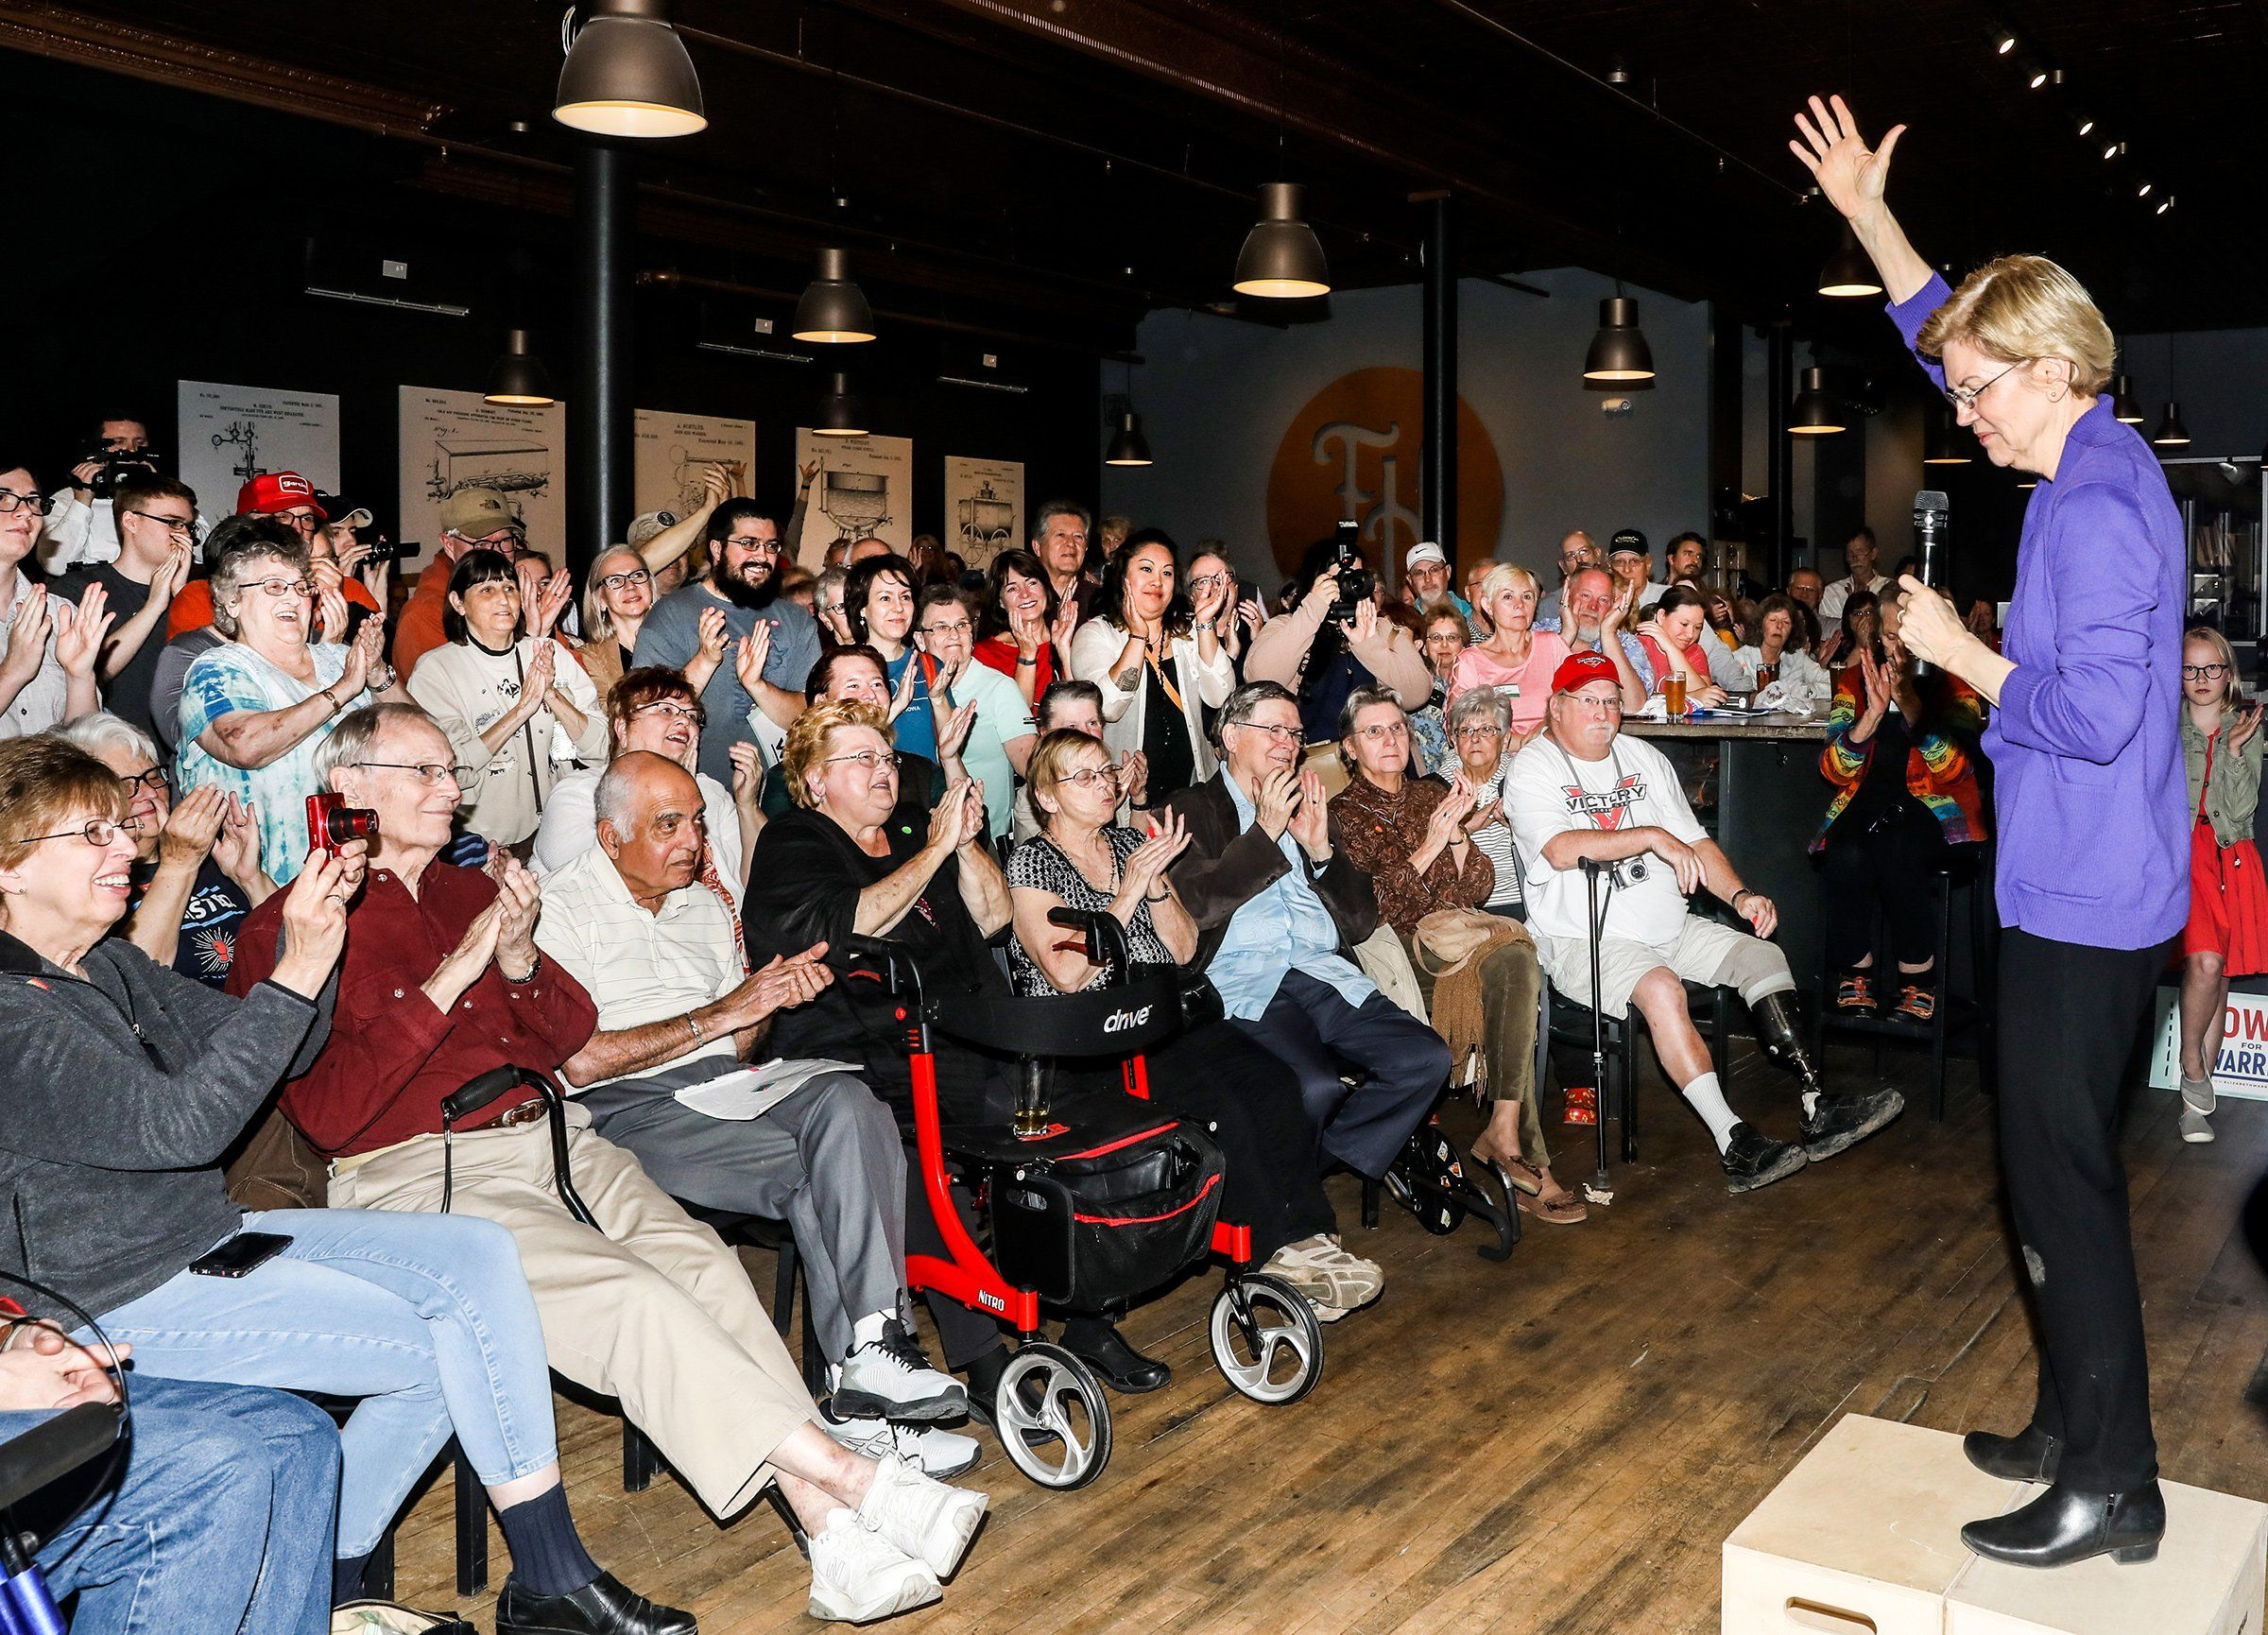 Democratic presidential candidate Sen. Elizabeth Warren holds a meet and greet with Iowa voters at a Mason City brewery on May 4.